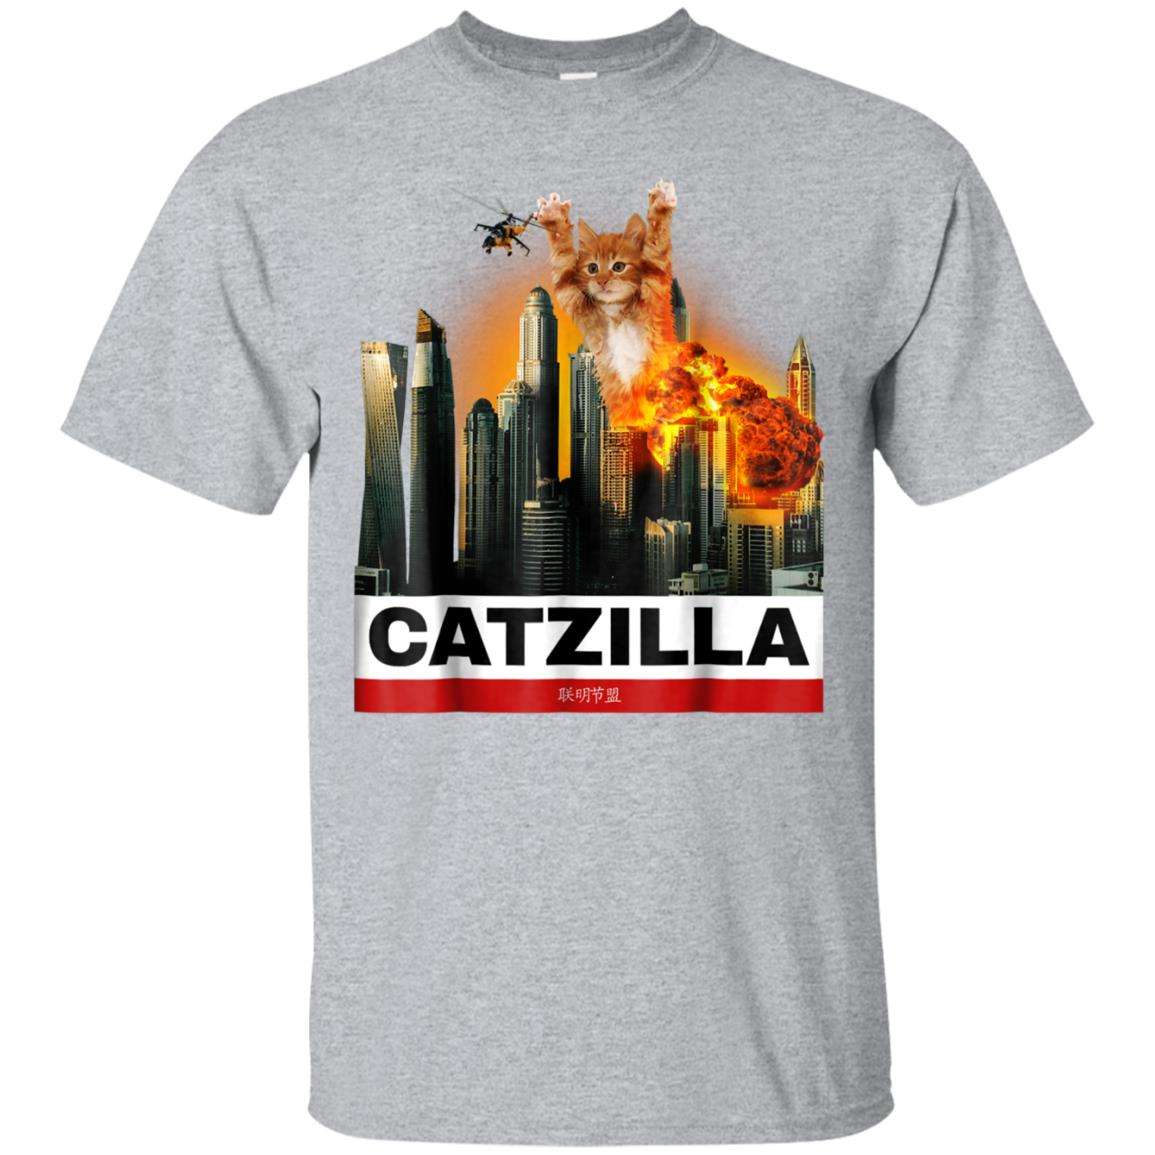 CATZILLA - Funny Kitty Tshirt for Cat lovers to Halloween 99promocode